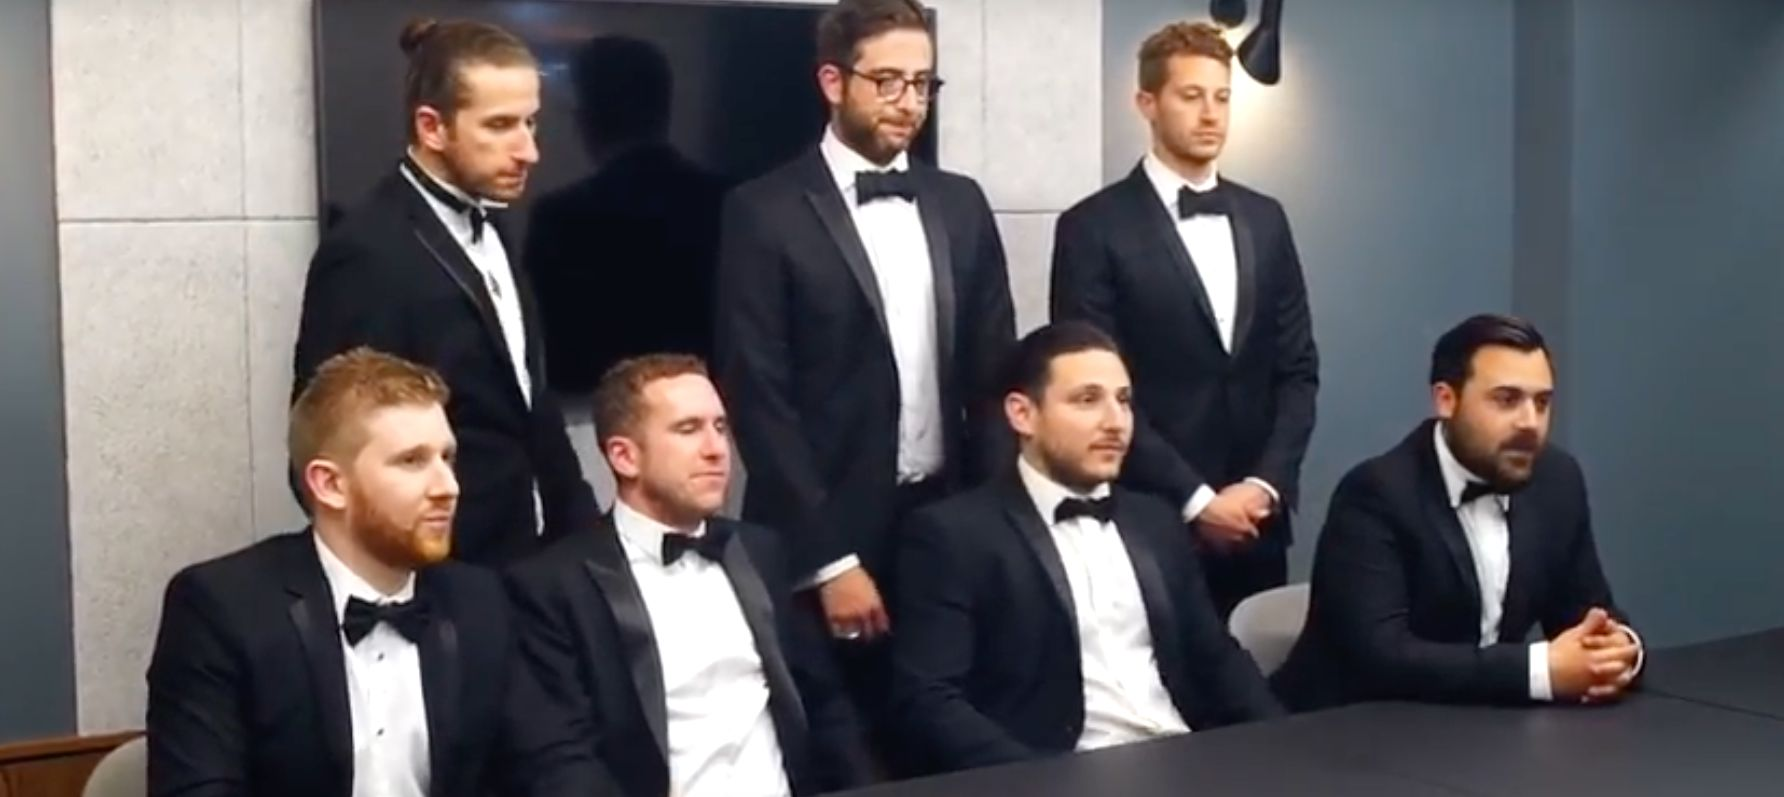 Lads Deliver Epic Best Man Speech By Creating 'The Apprentice'